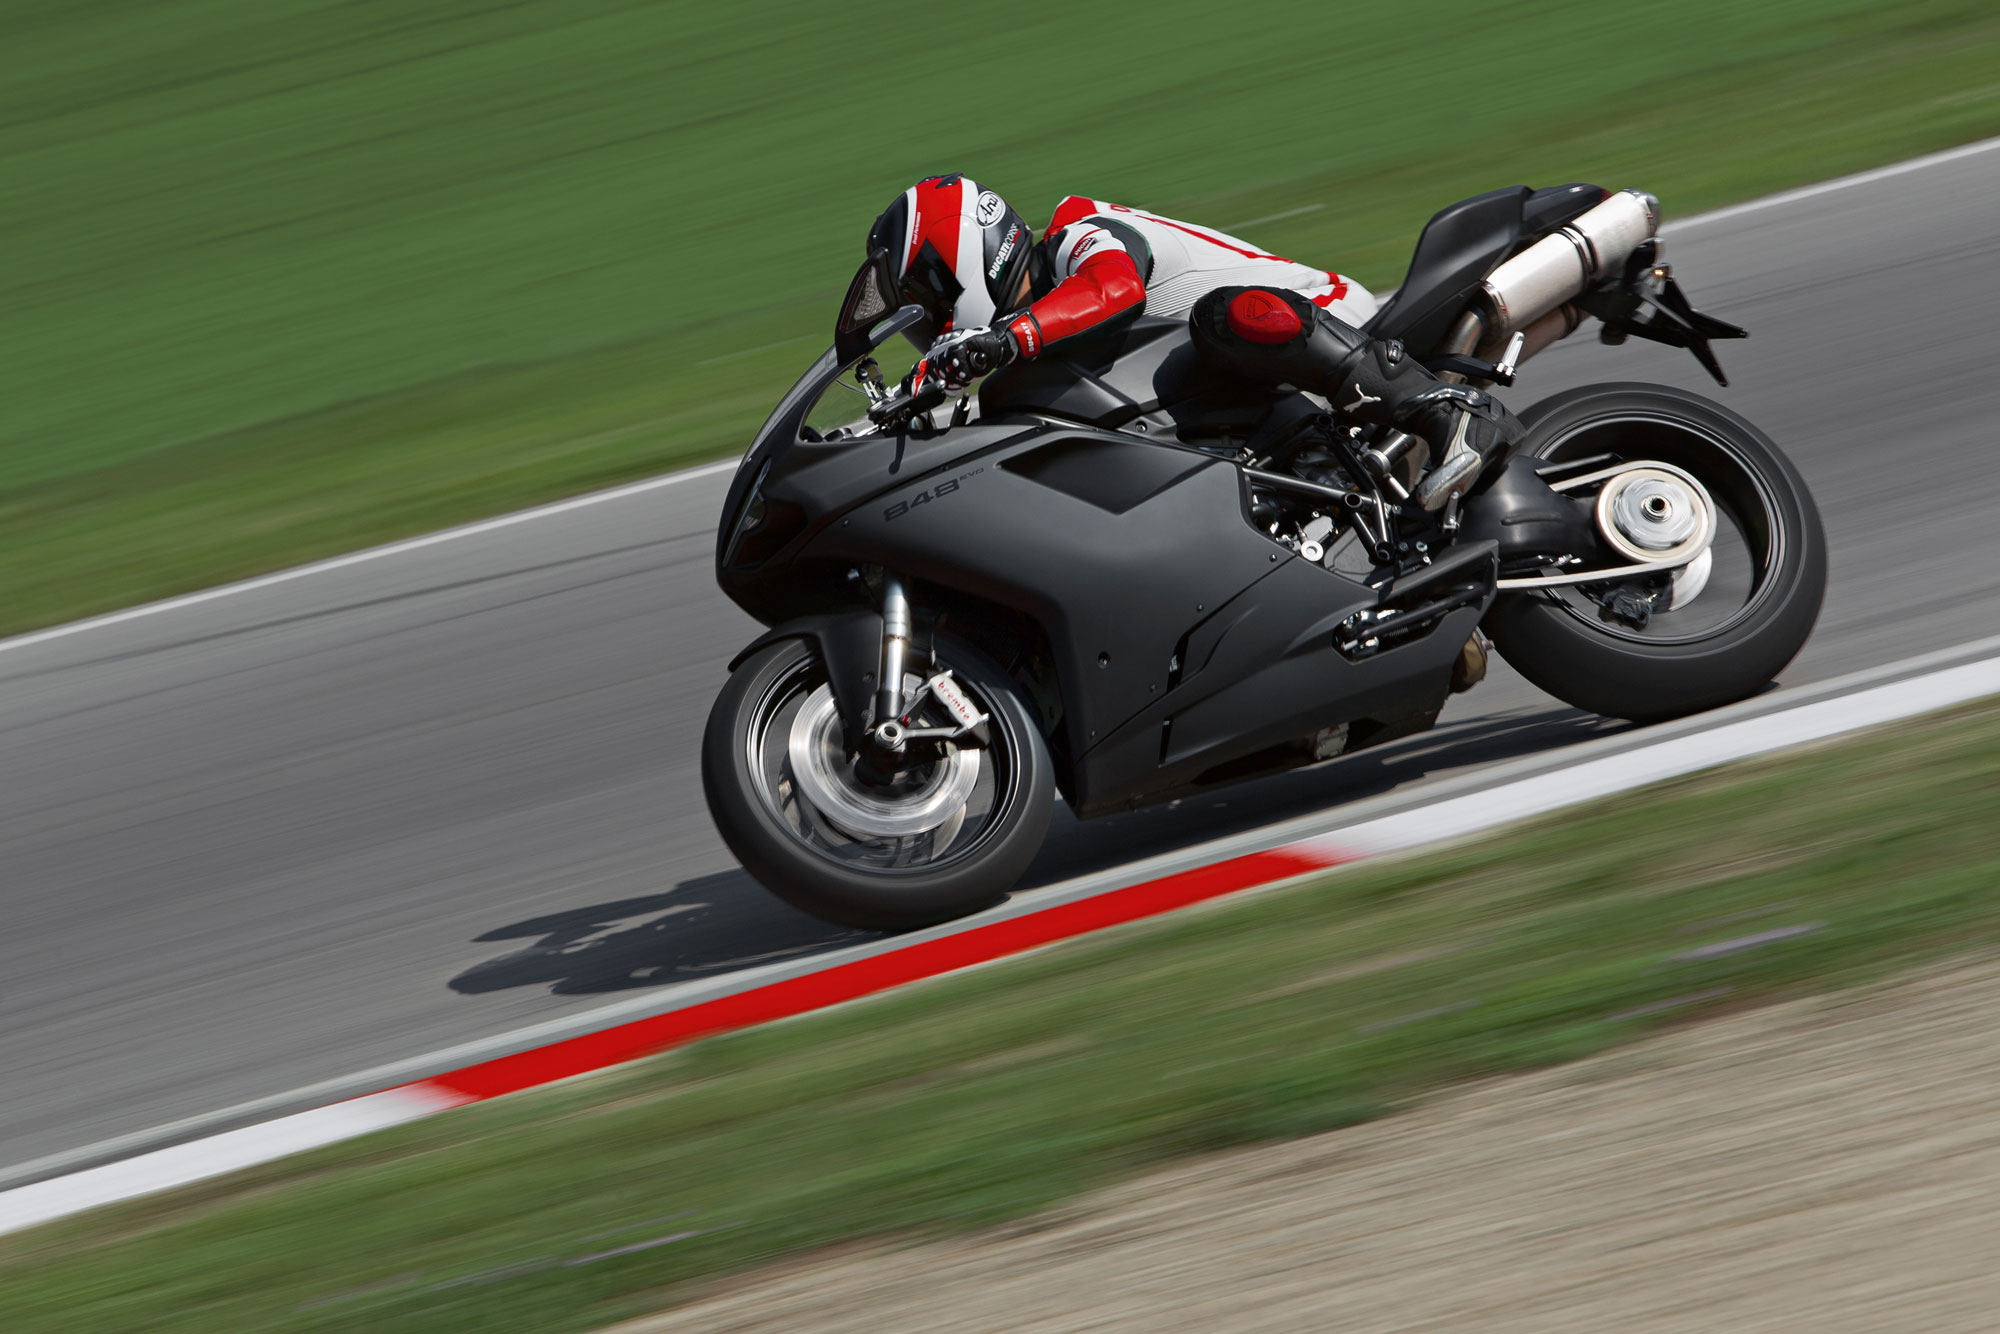 2013 Ducati Superbike 848 EVO Dark Review